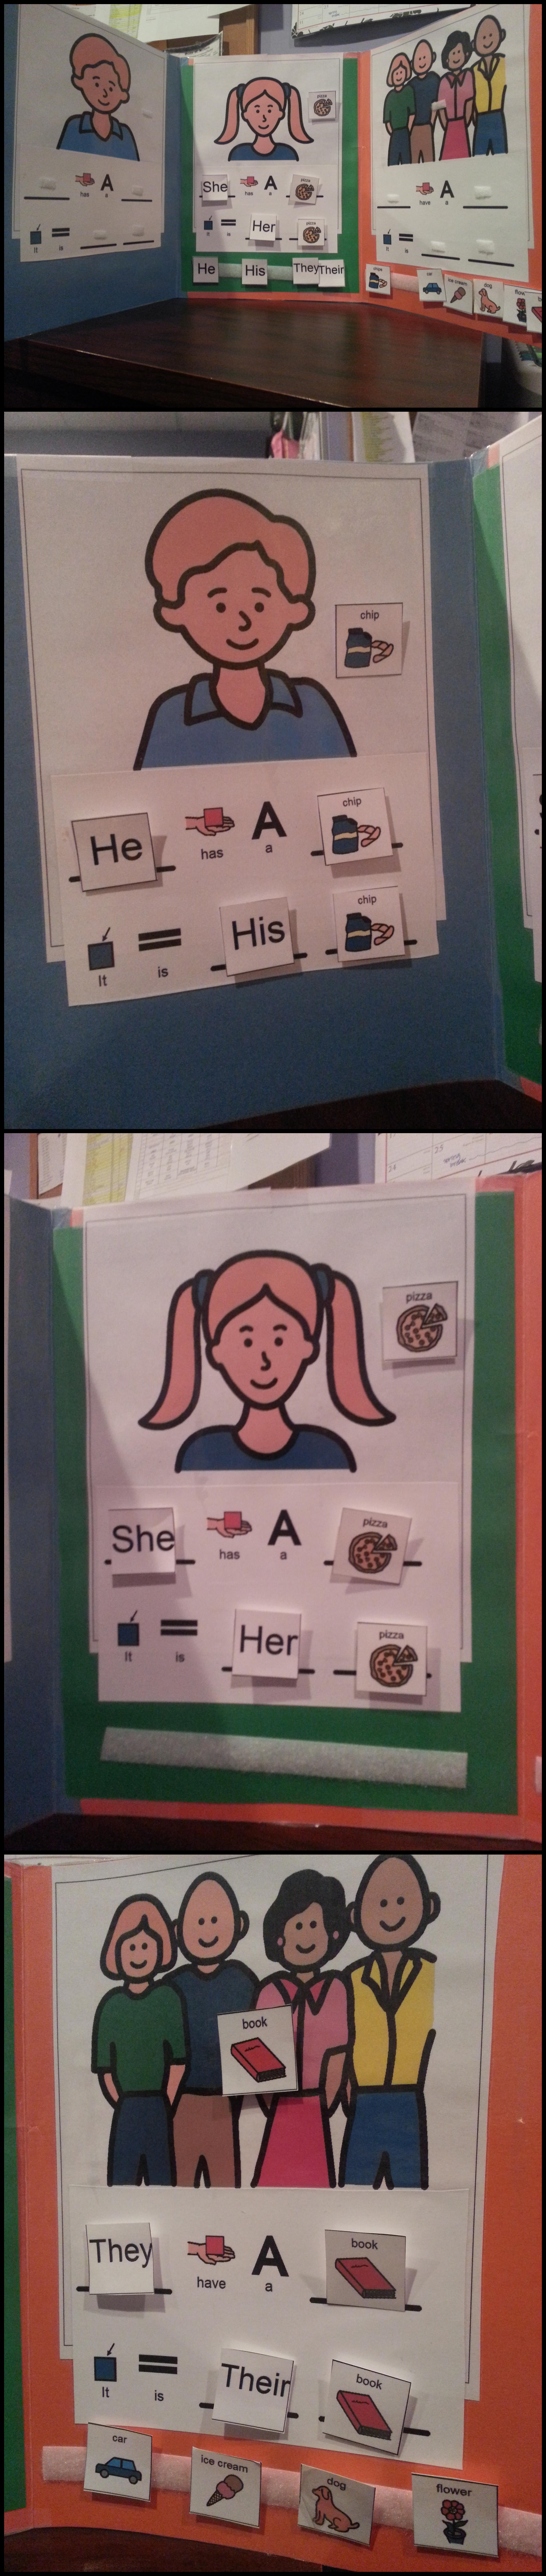 Target Pronouns He She They And His Her Their Tape